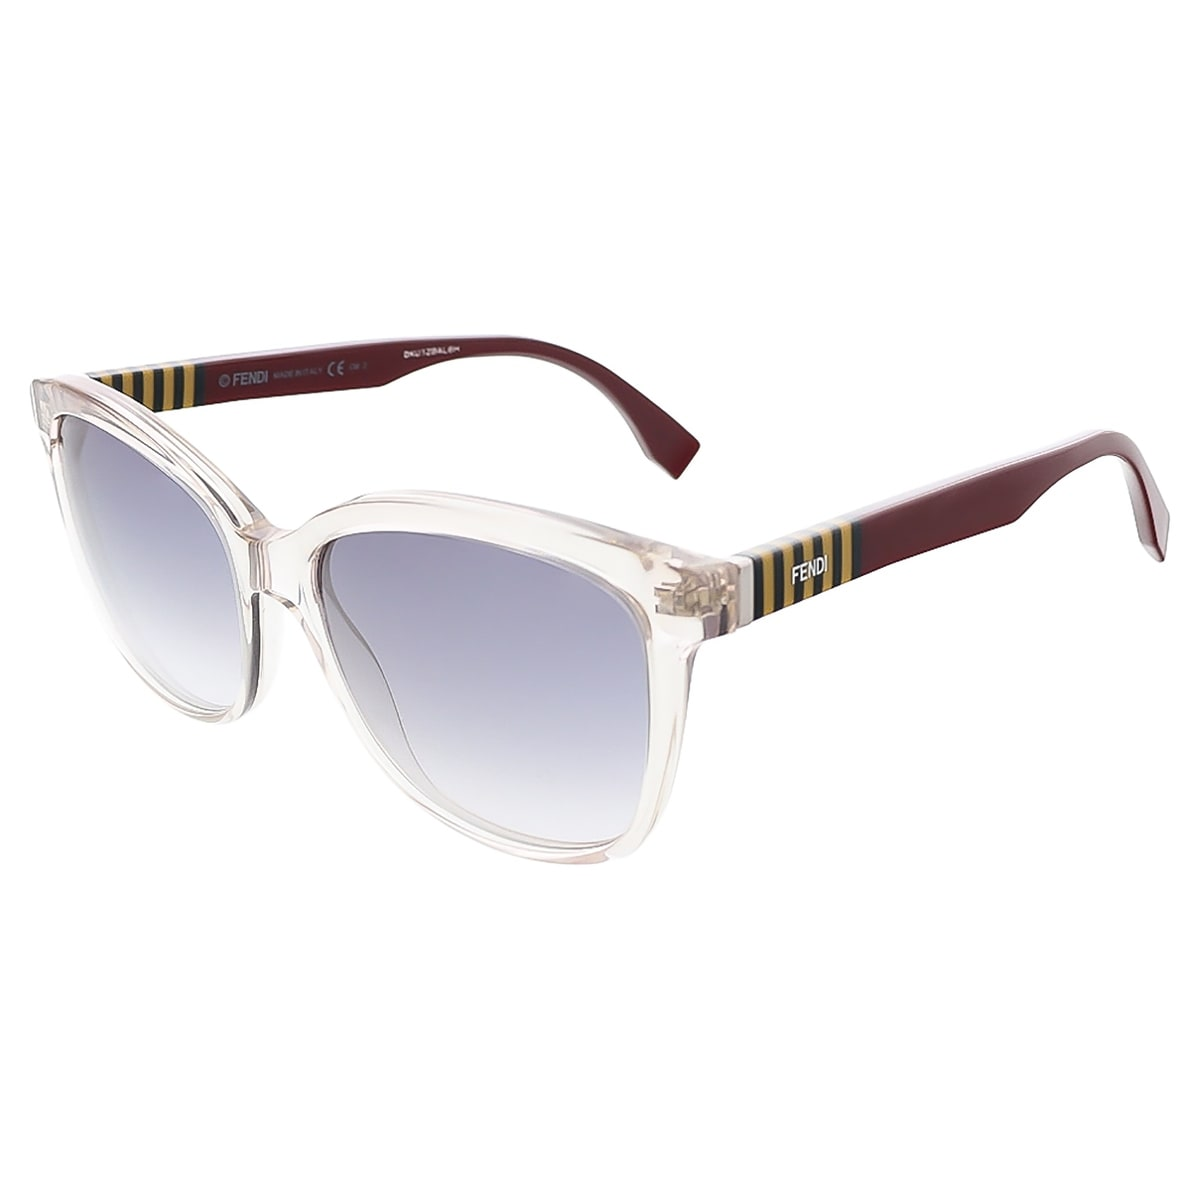 7b8916df795 Shop Fendi FF0054S 0MQX Grey Penguin Burgundy Butterfly sunglasses - On  Sale - Free Shipping Today - Overstock - 13401802